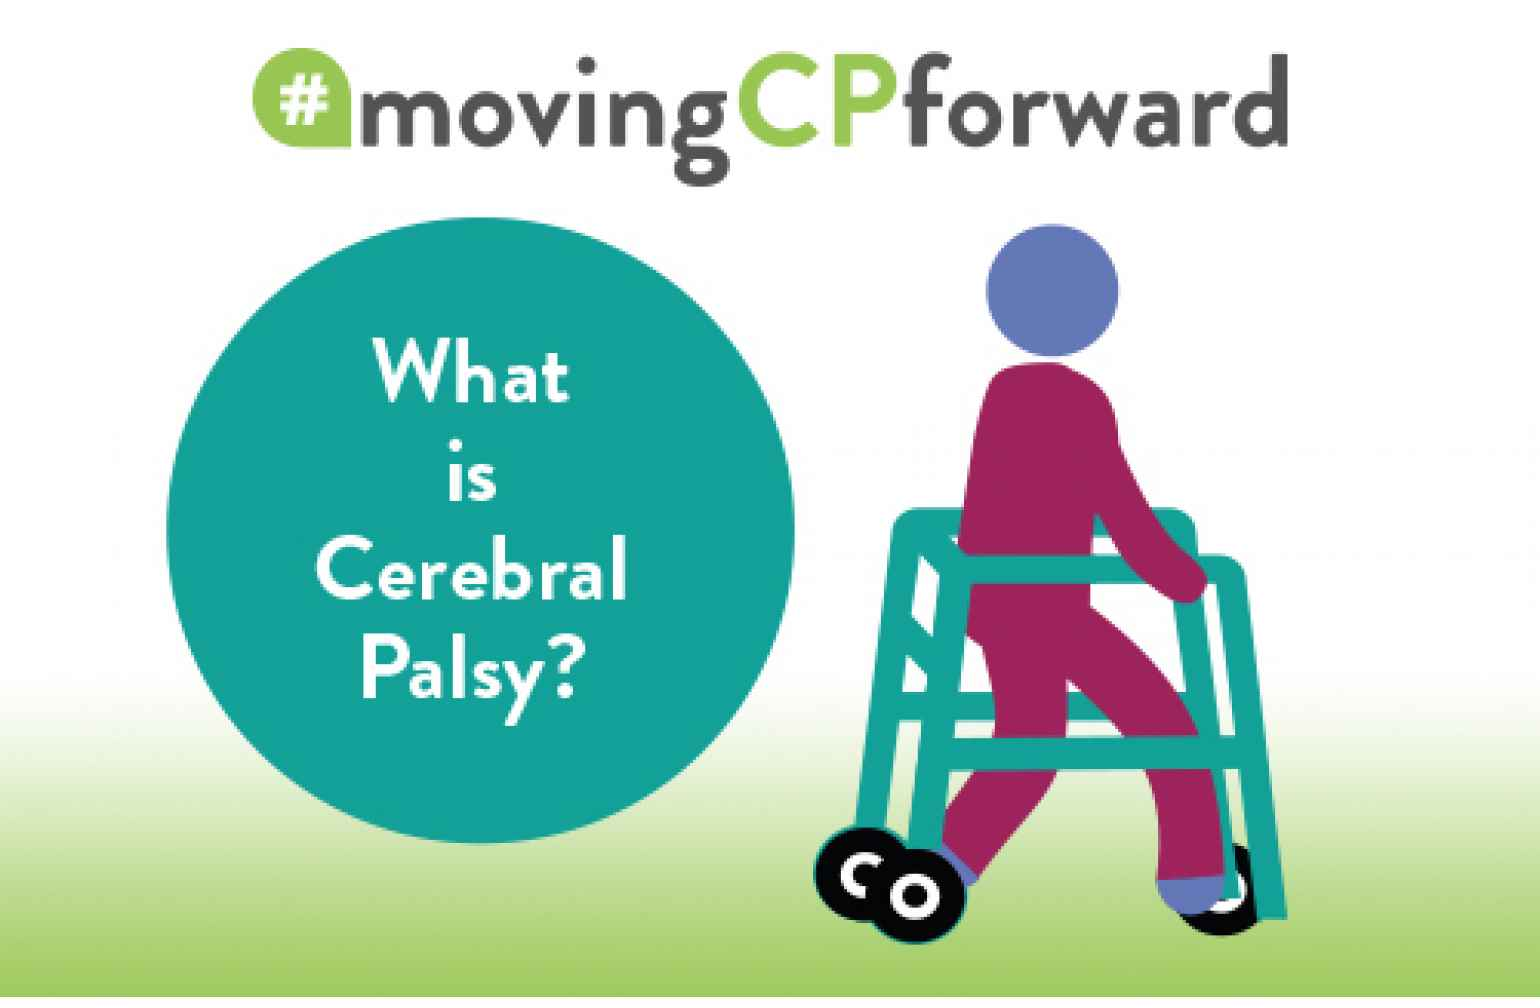 moving forward - cerebral palsy